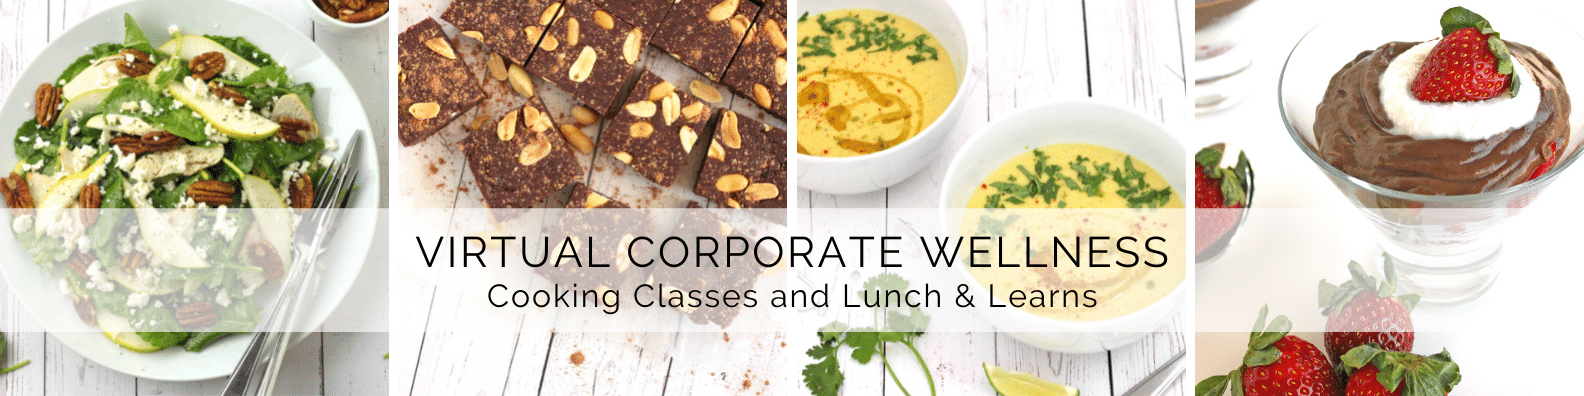 Virtual Corporate Wellness Cooking Classes and Lunch & Learns